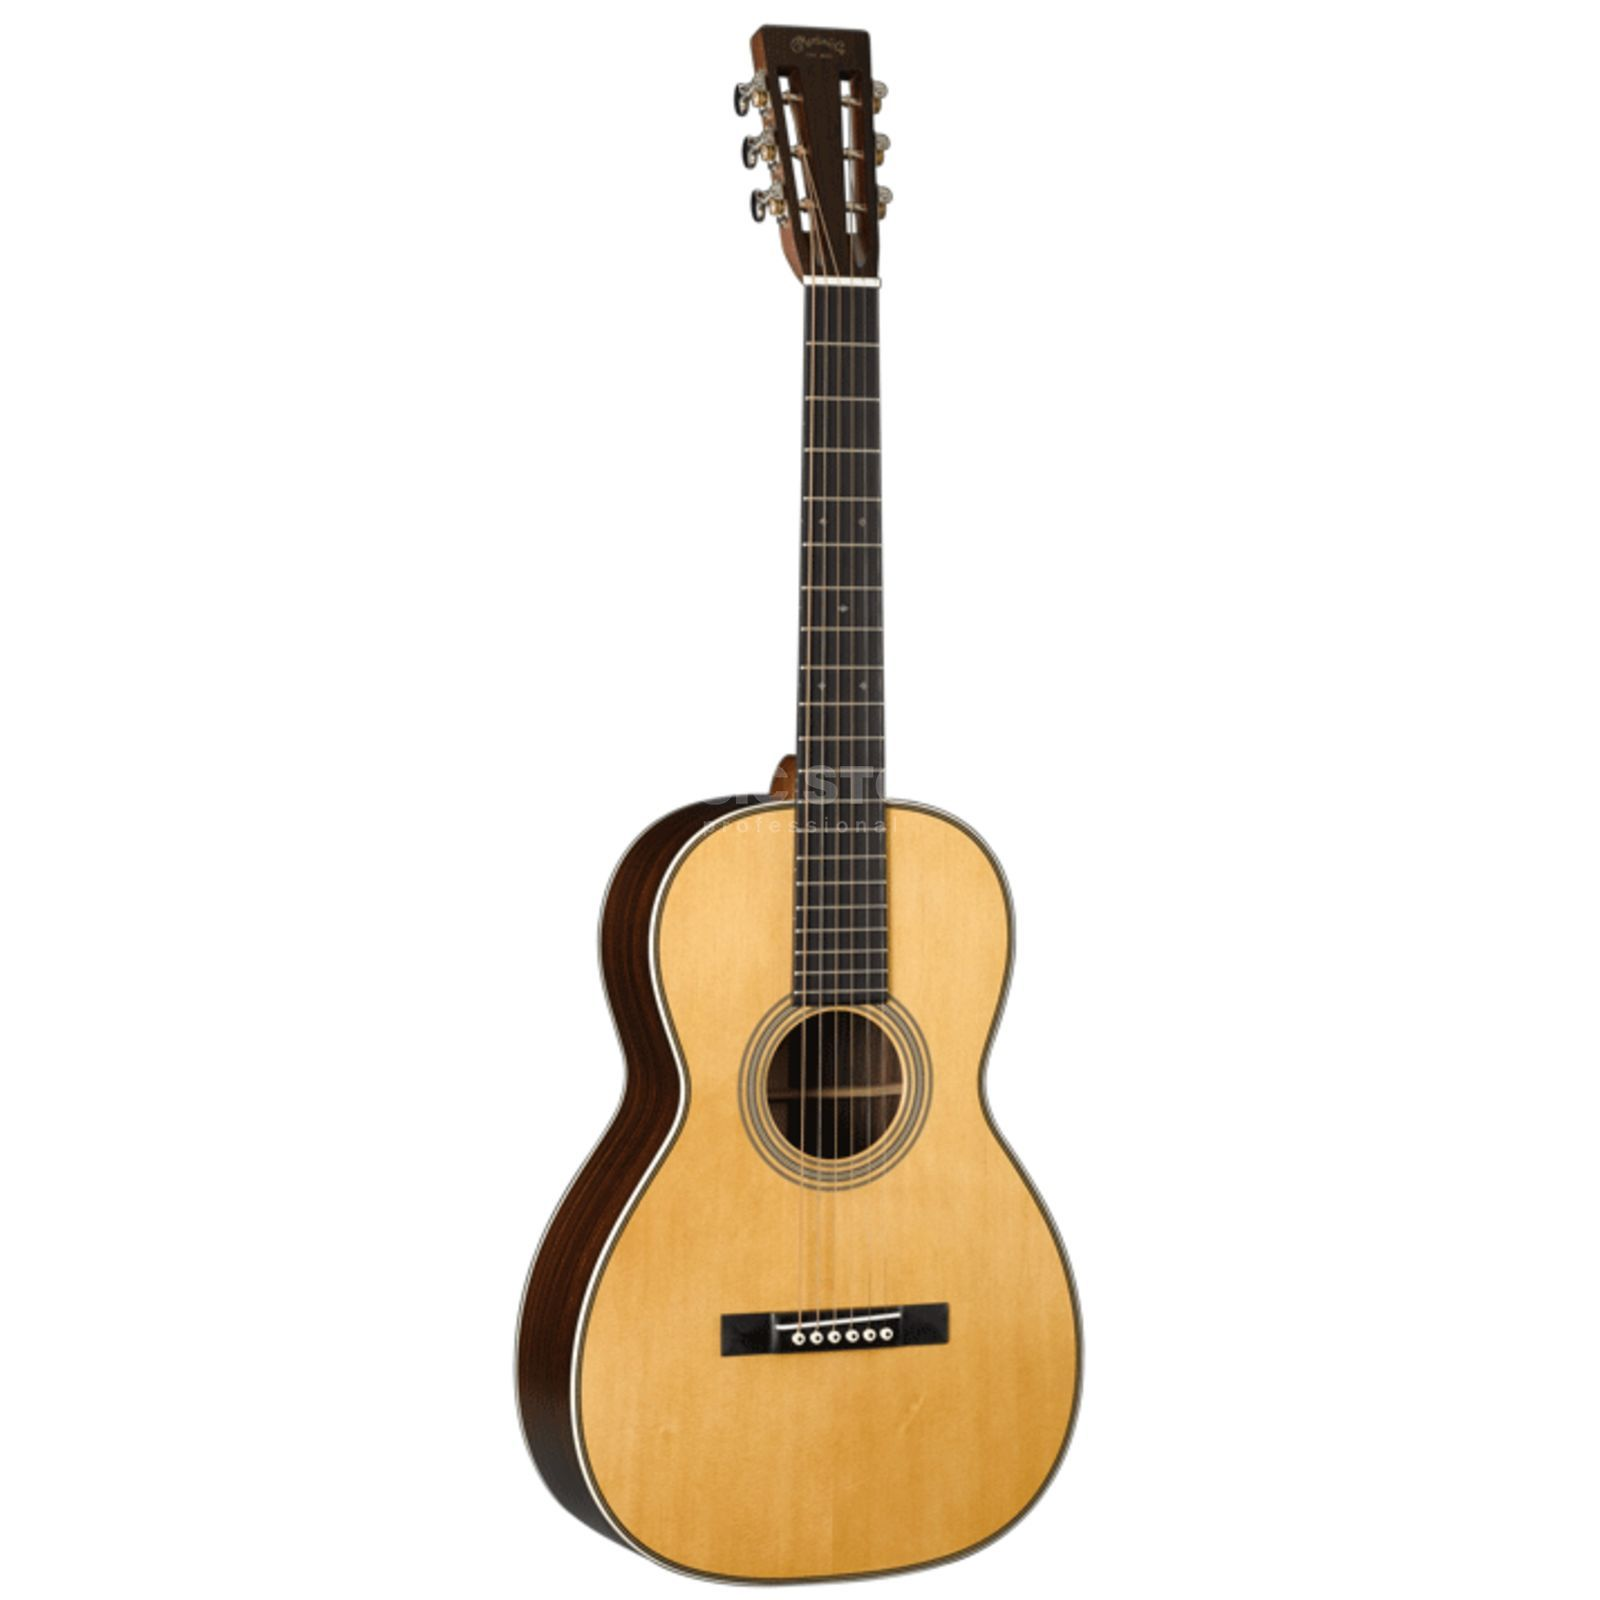 Martin Guitars 0-28VS Sunburst Produktbillede